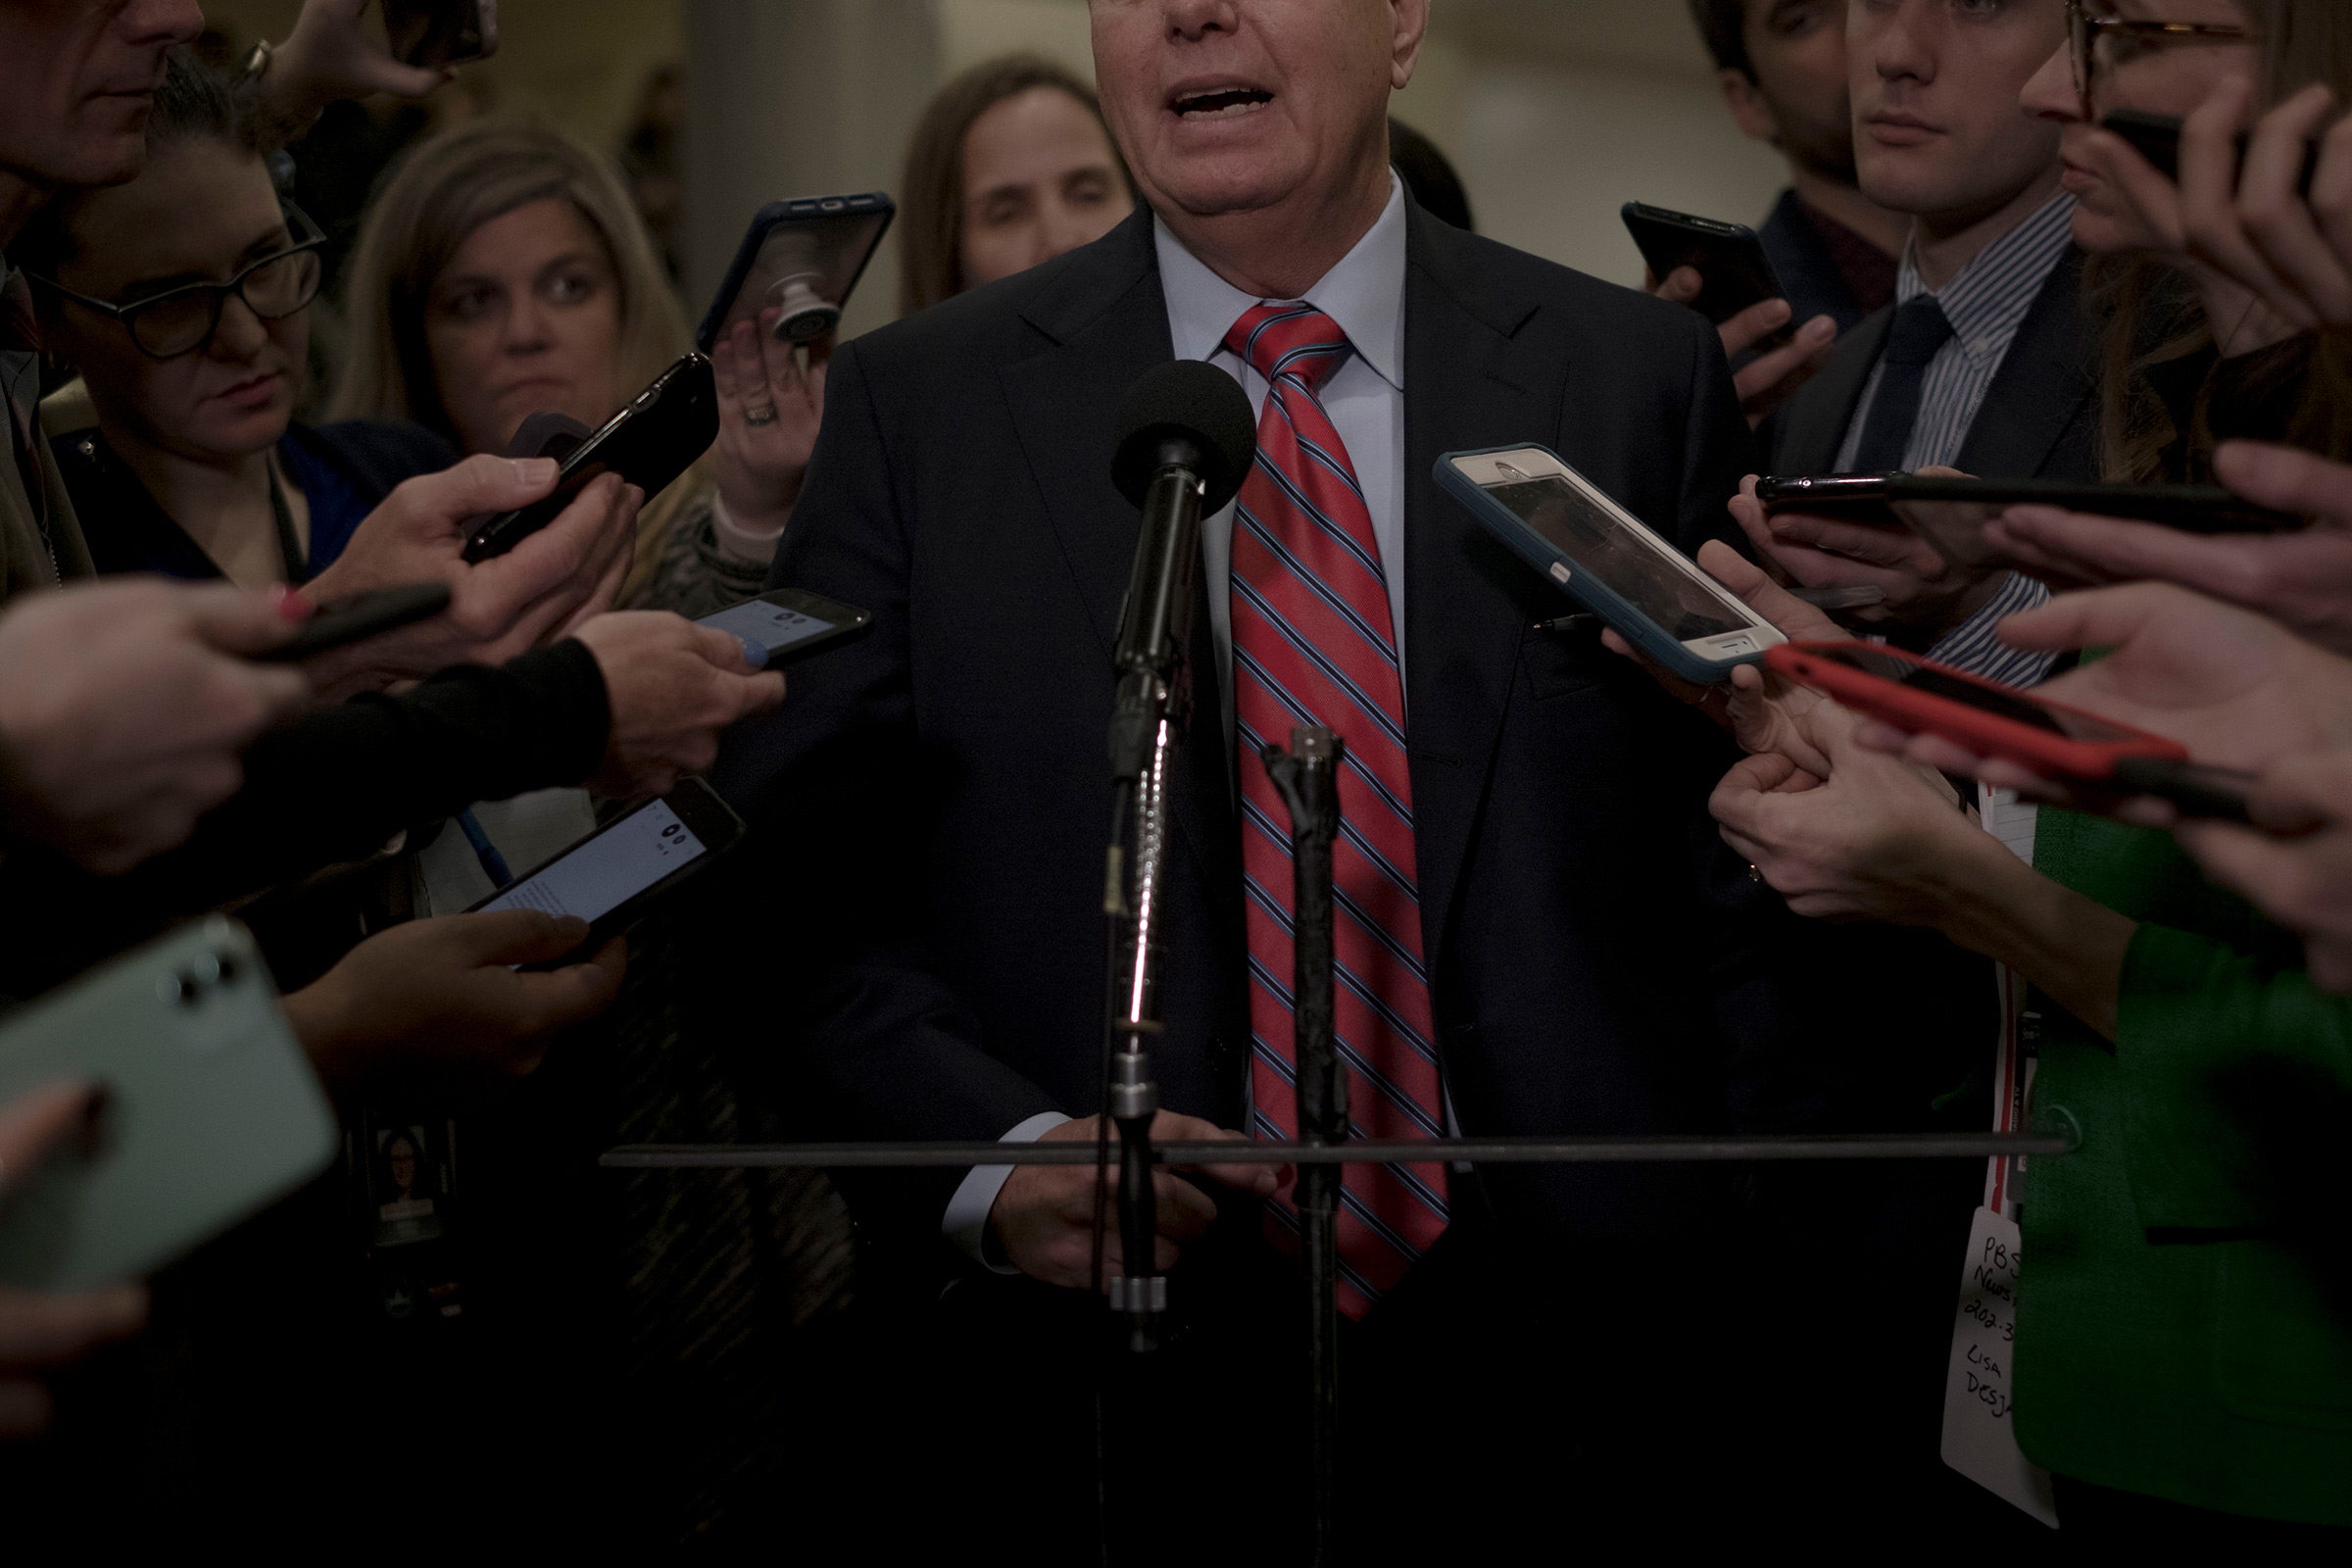 Sen. Lindsey Graham (R-S.C.) speaks to reporters before the senate impeachment trial at the Capitol in Washington, D.C., on Jan. 28, 2020.